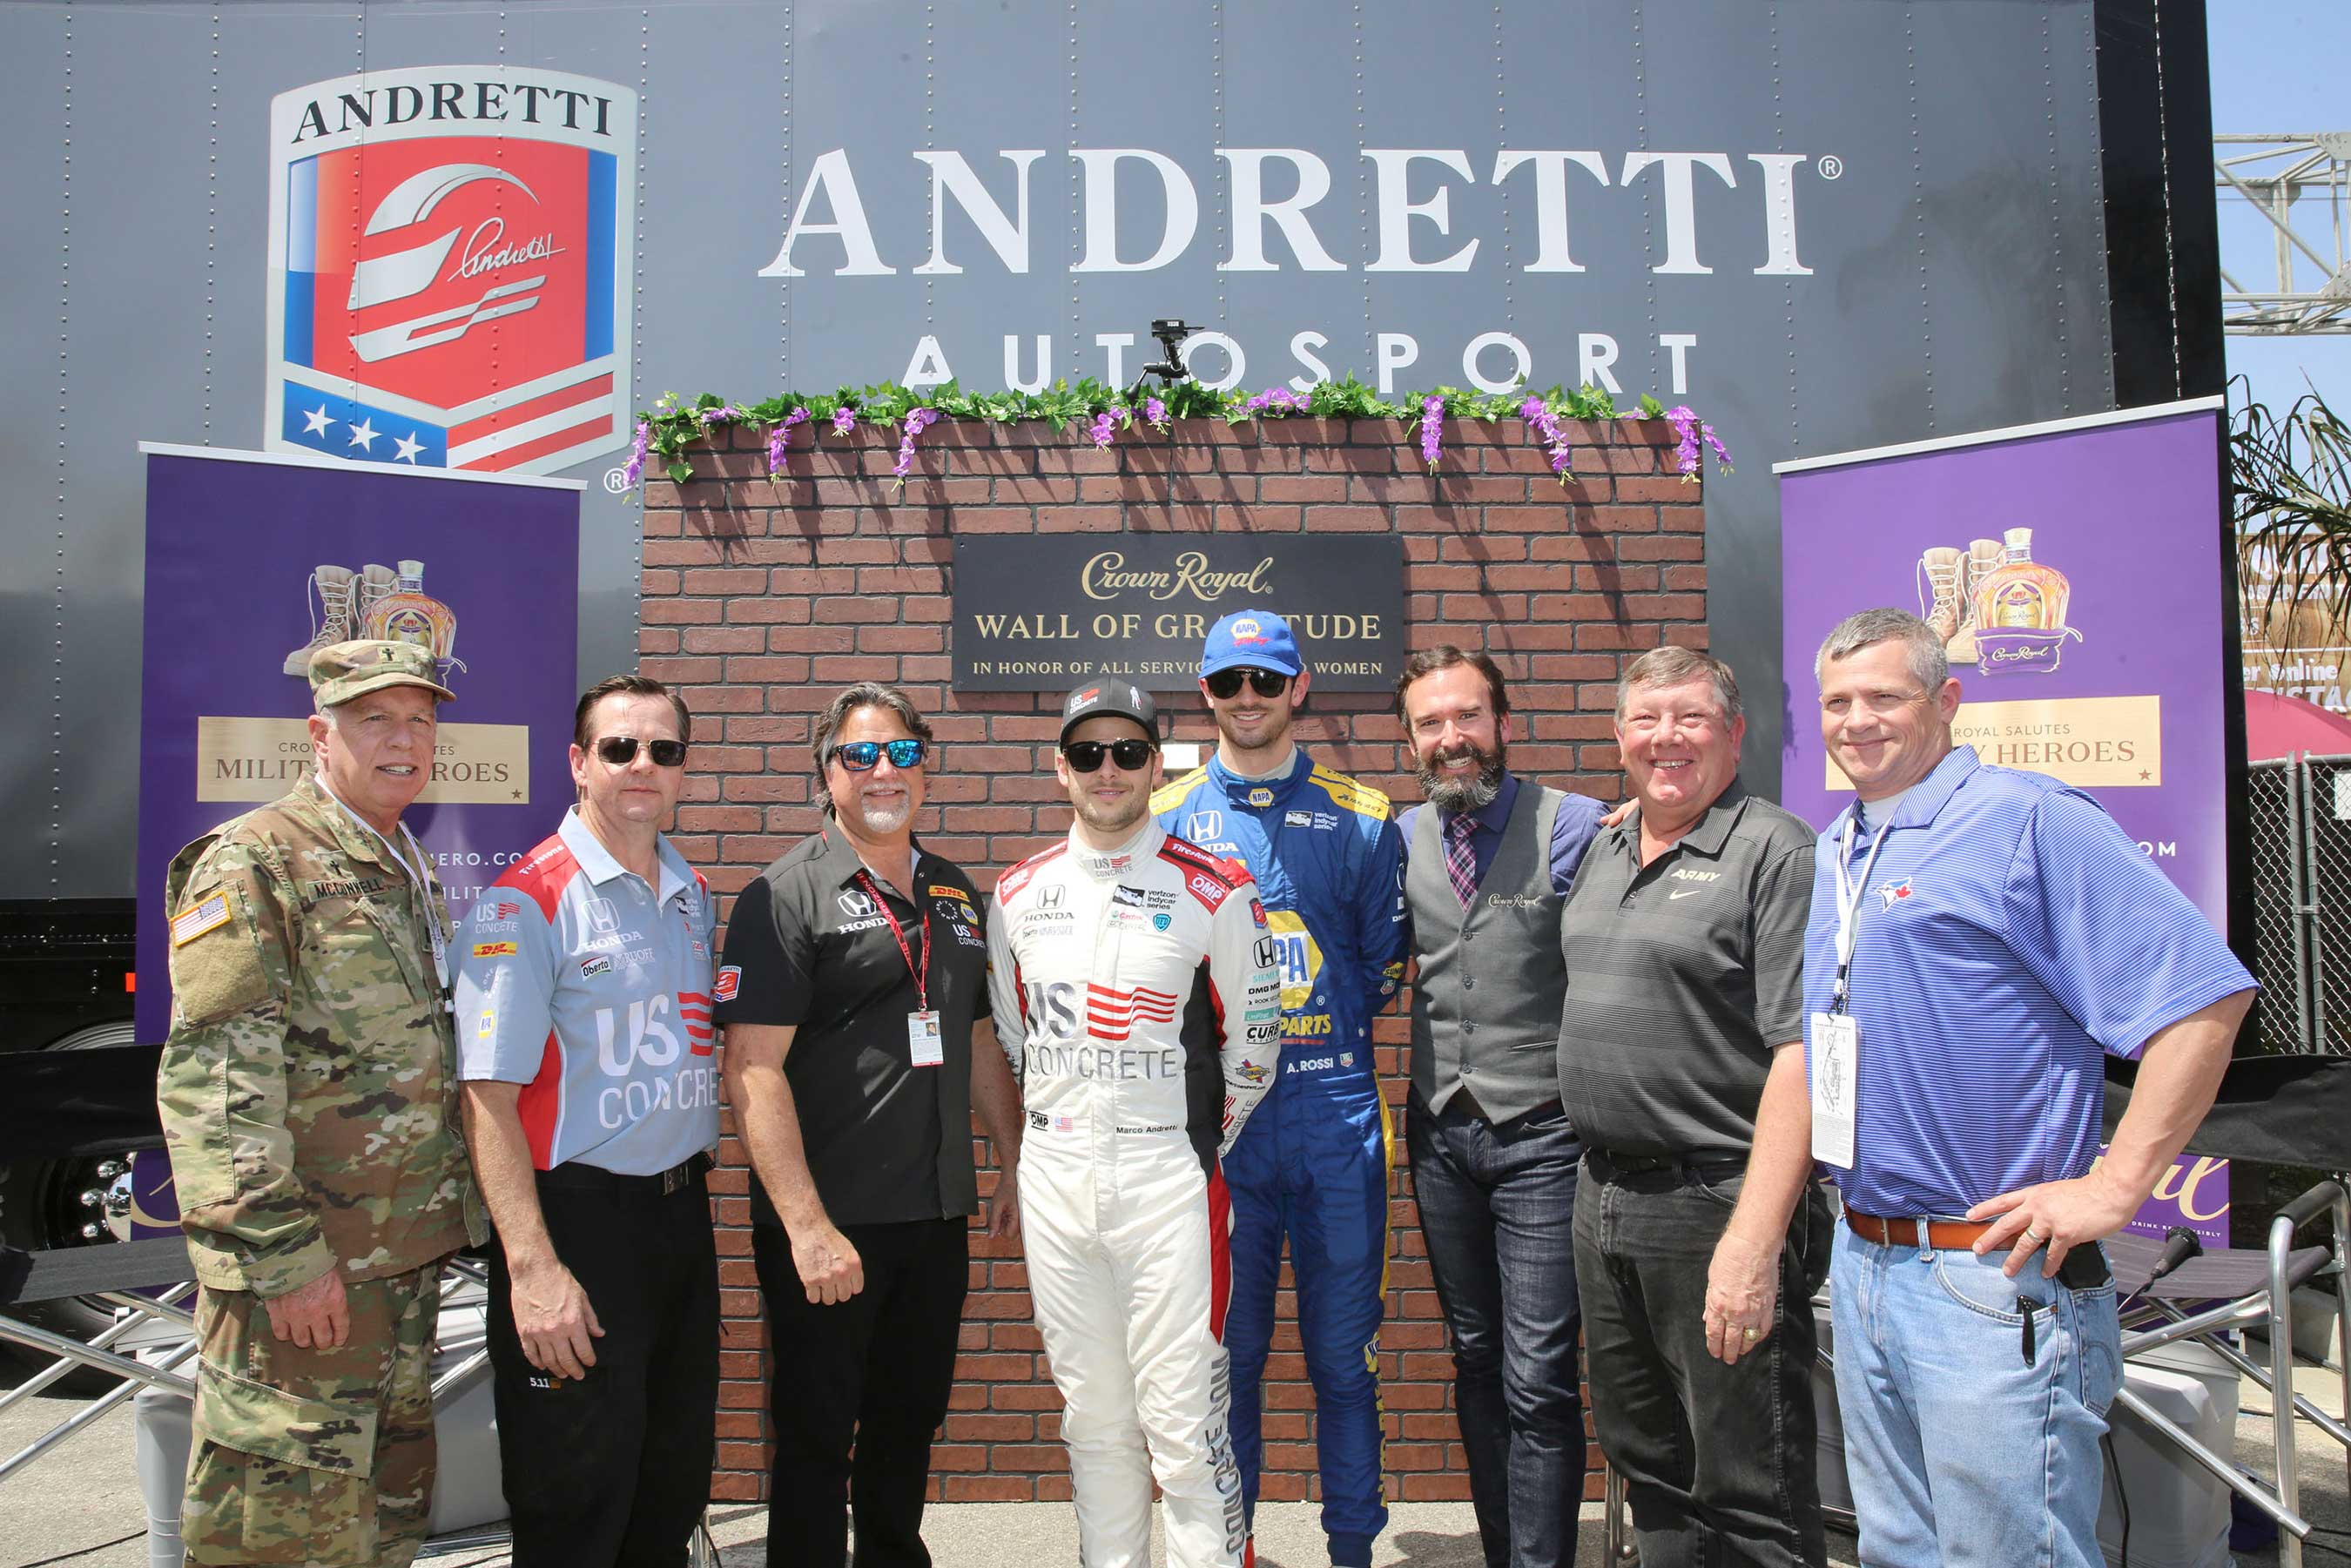 (L-R) Captain Randy Mc Connell, Grant Bentrud, Andretti Autosport CEO and Chairman Michael Andretti, Verizon IndyCar Series driver Marco Andretti, Verizon IndyCar Series driver Alexander Rossi, and Crown Royal Director of Whisky Engagement Stephen Wilson, William J Sandbrook, and Sergeant Dean Gness pictured during Crown Royal and Andretti Autosport team up to honor military heroes on April 13, 2018 in Long Beach, California. (Photo by Rachel Murray/Getty Images for Crown Royal)